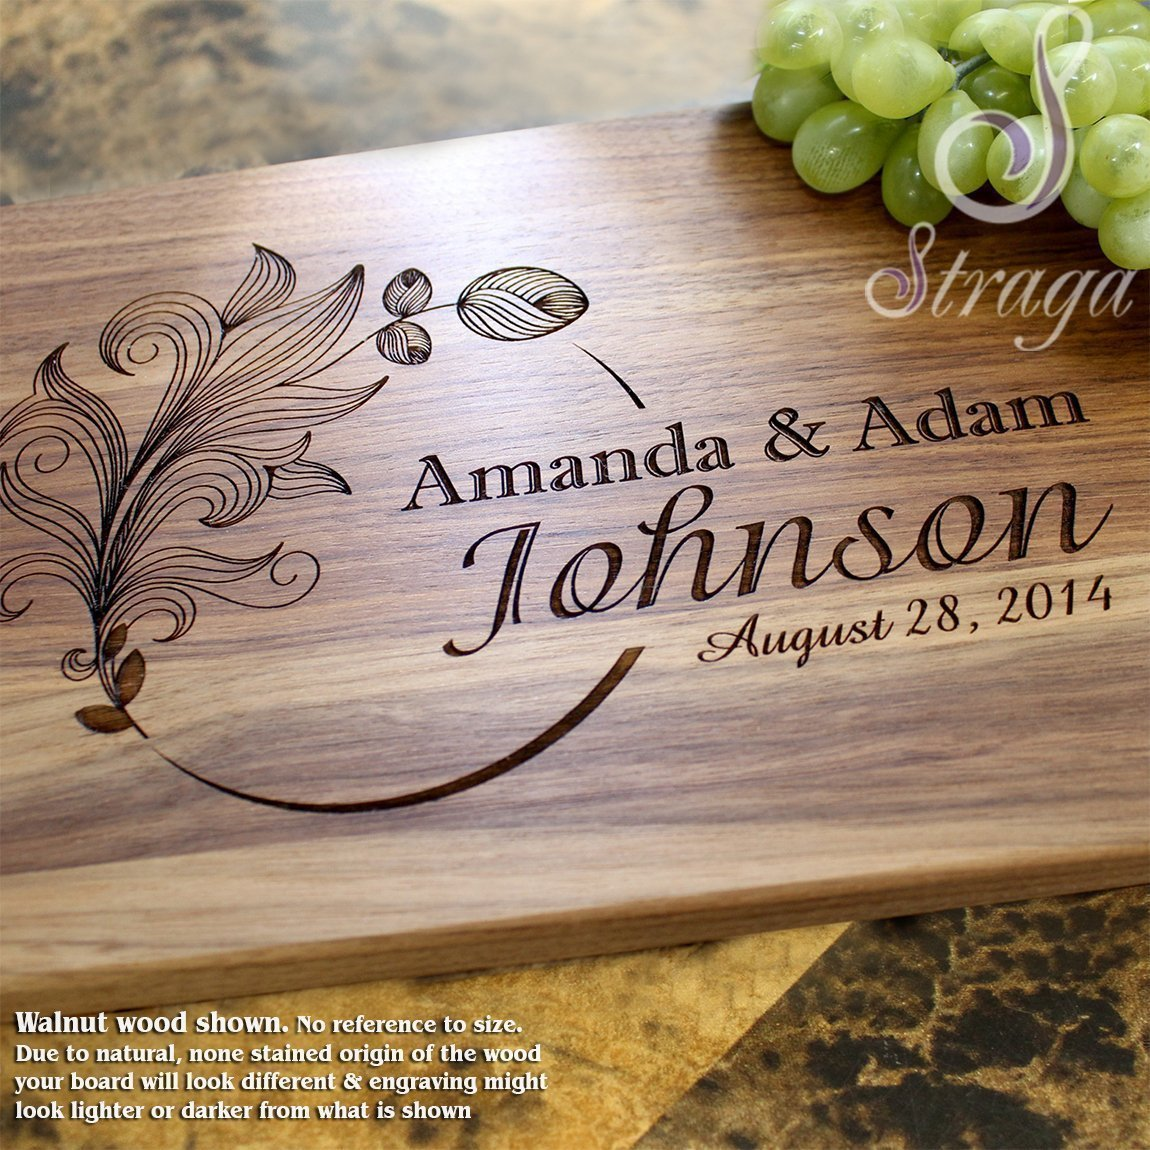 Personalized Cutting Board, Custom Keepsake, Engraved Serving Cheese Plate, Wedding, Anniversary, Engagement, Housewarming, Birthday, Corporate, Closing Gift #403